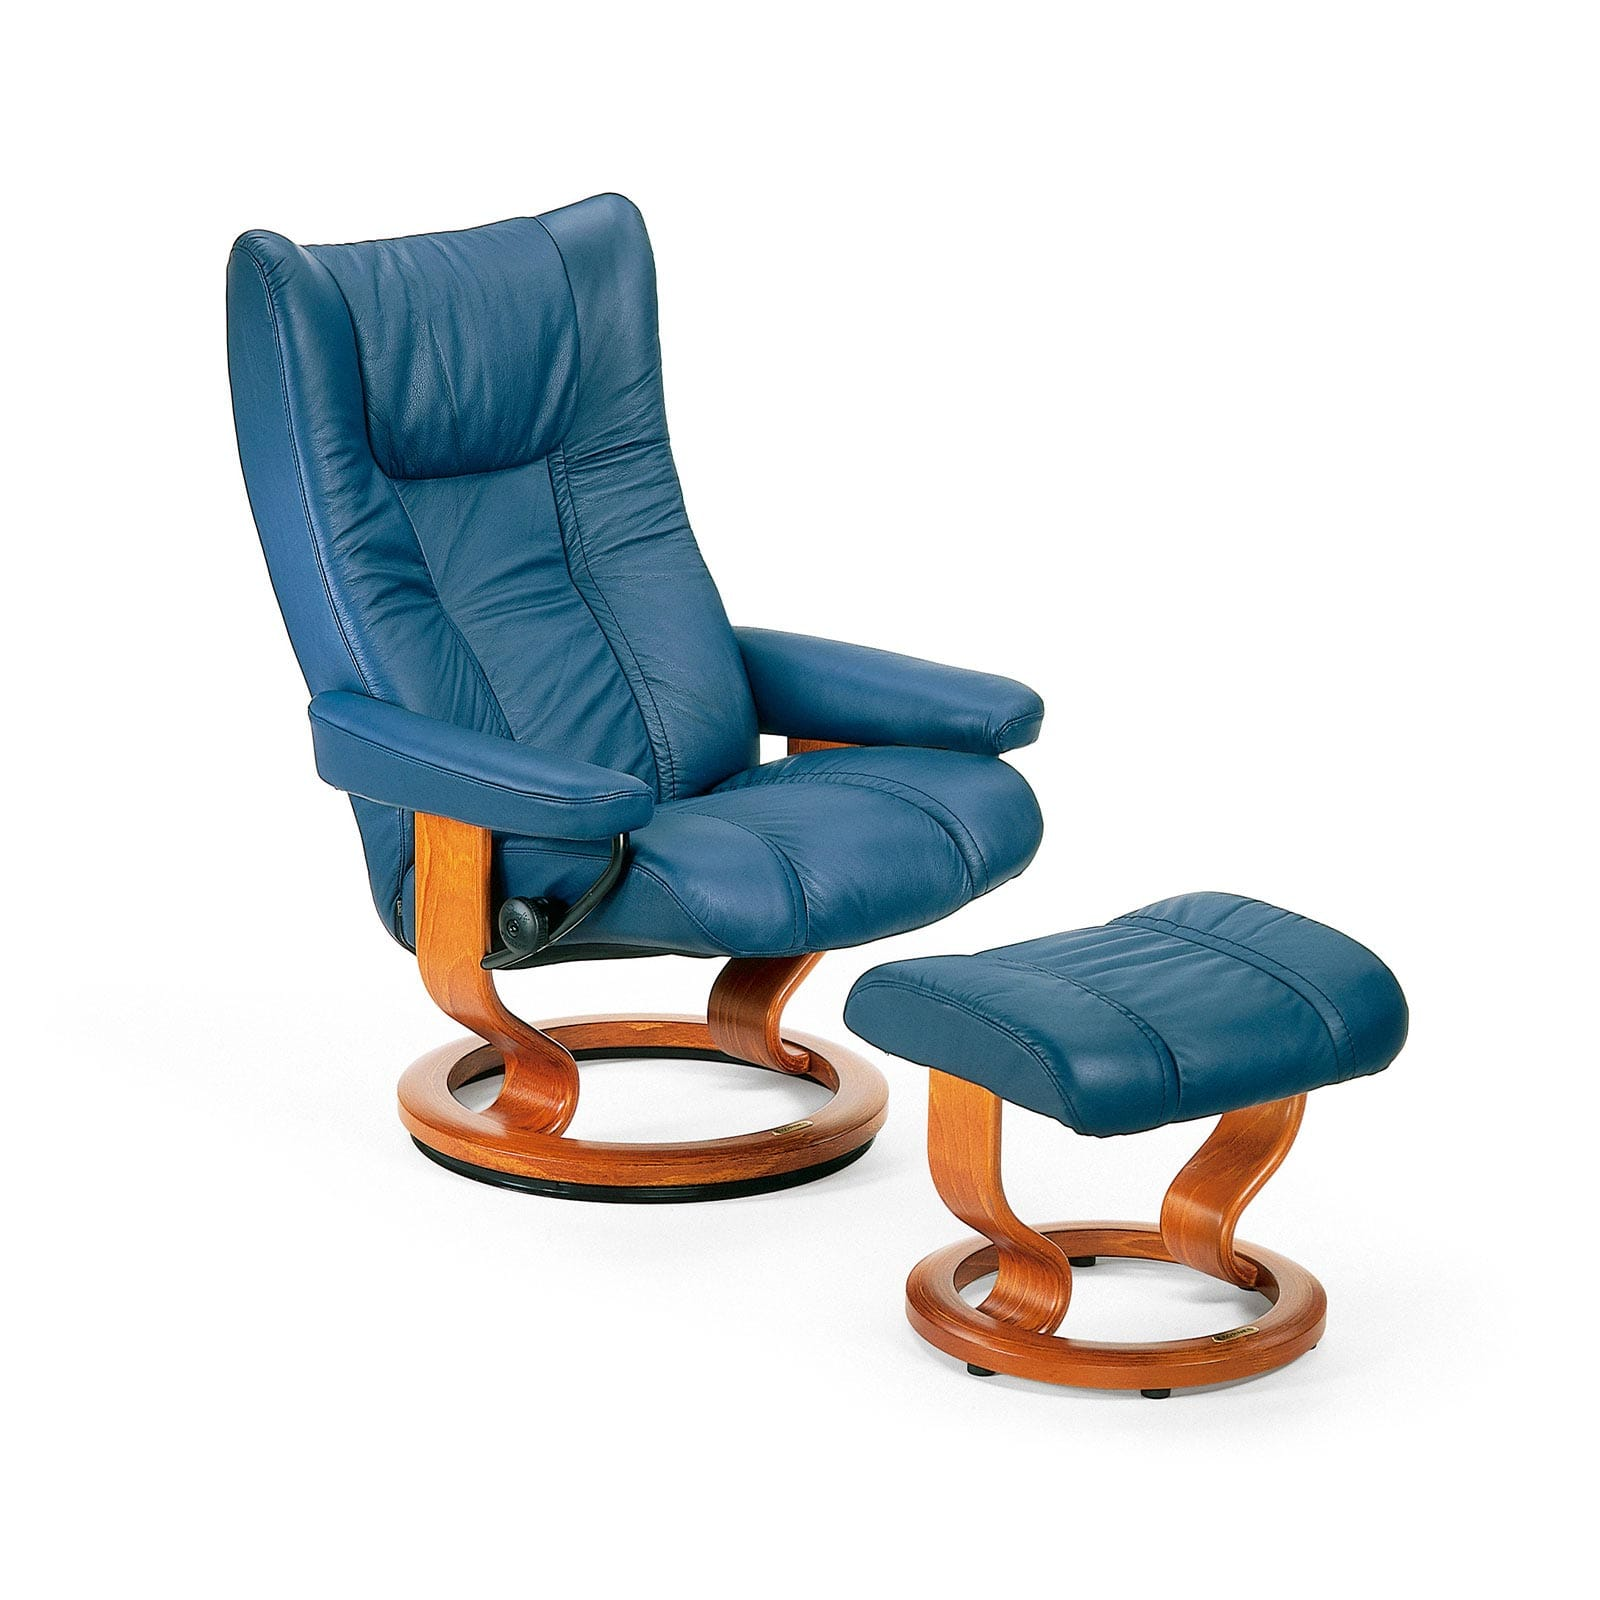 stressless sessel wing paloma oxford blue mit hocker stressless. Black Bedroom Furniture Sets. Home Design Ideas